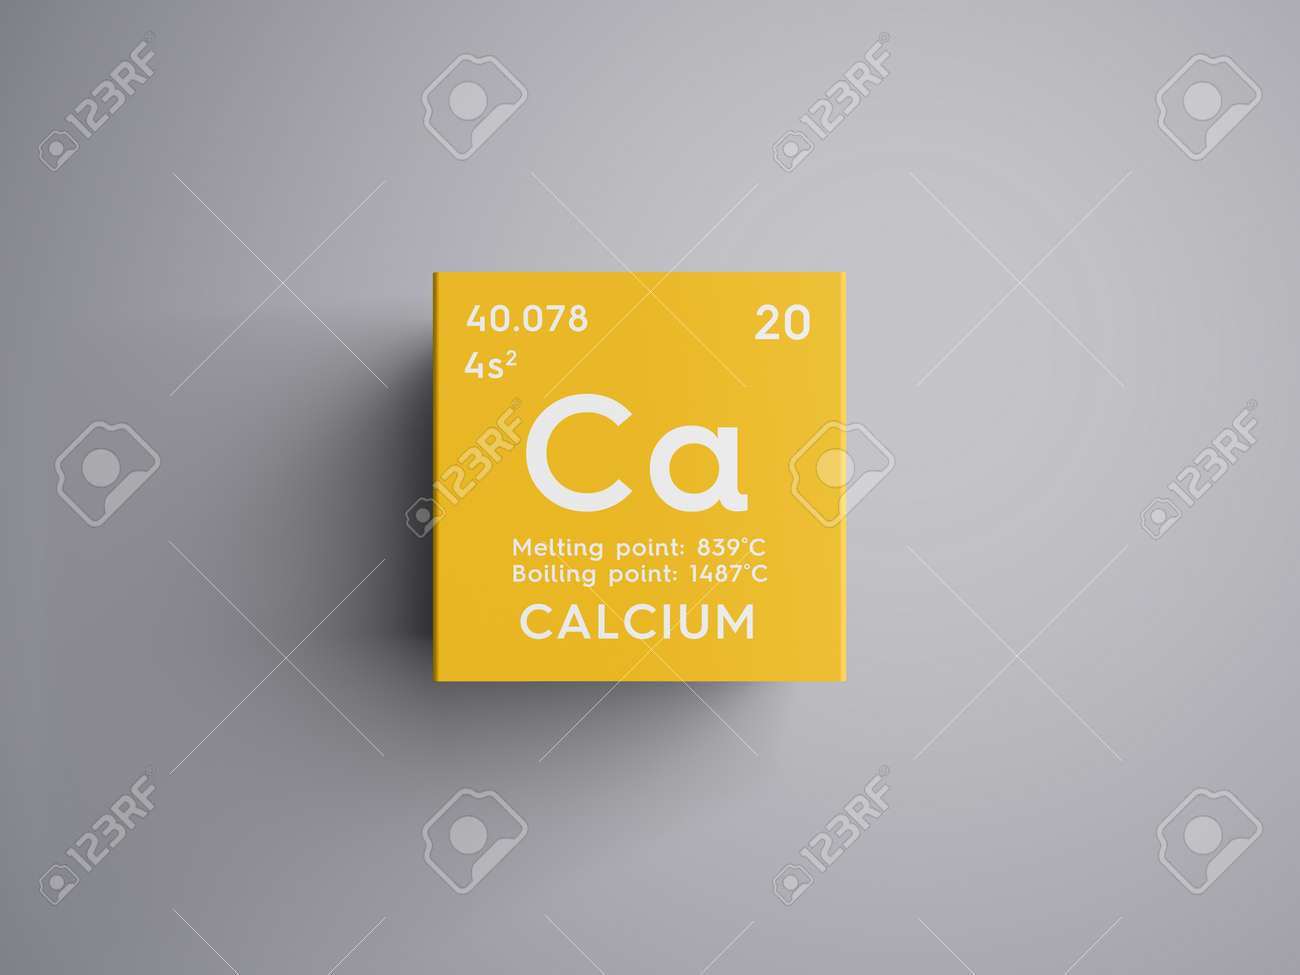 Periodic table calcium image collections periodic table images periodic table calcium gallery periodic table images periodic table calcium choice image periodic table images calcium gamestrikefo Choice Image